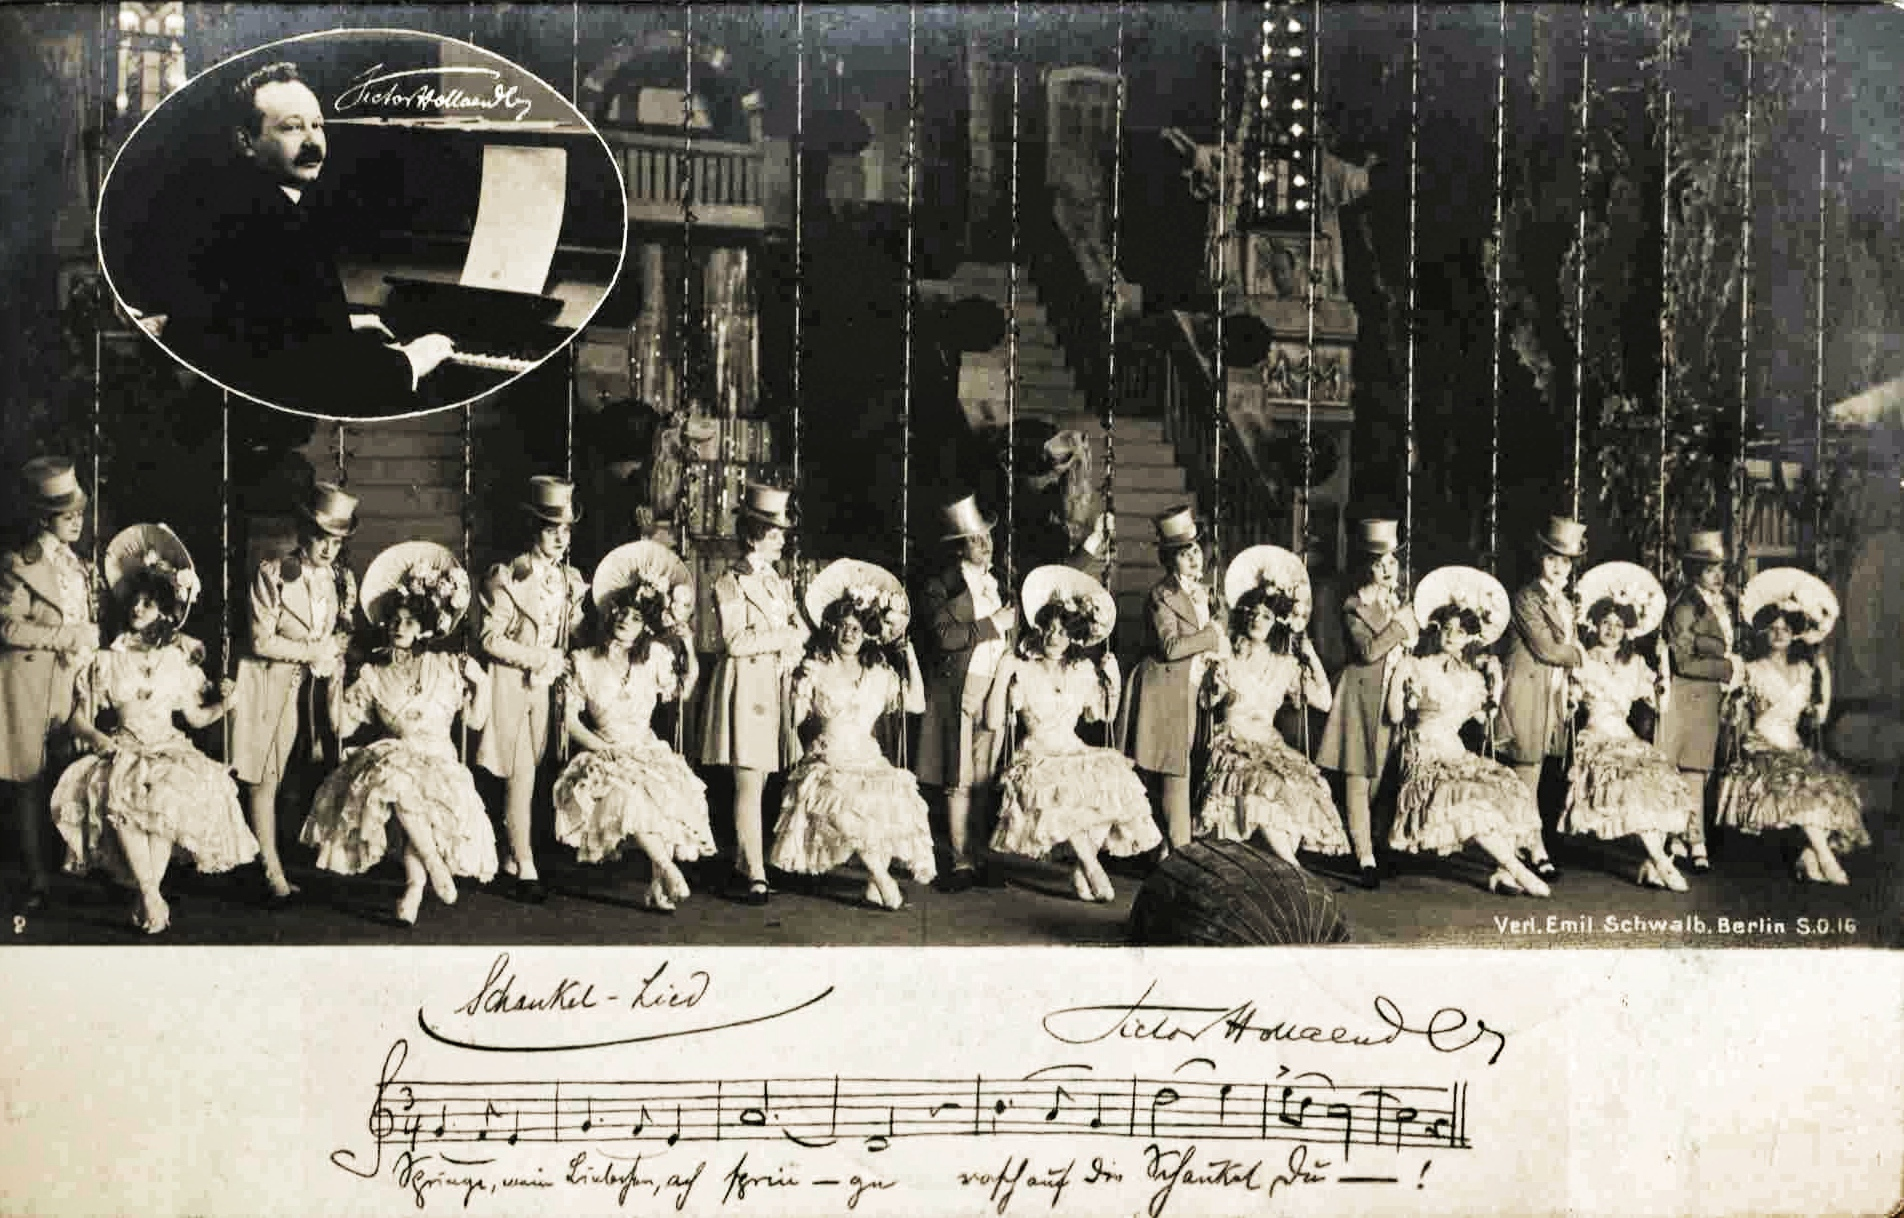 A typical scene from a Hollaender revue in pre-WW1 Berlin.